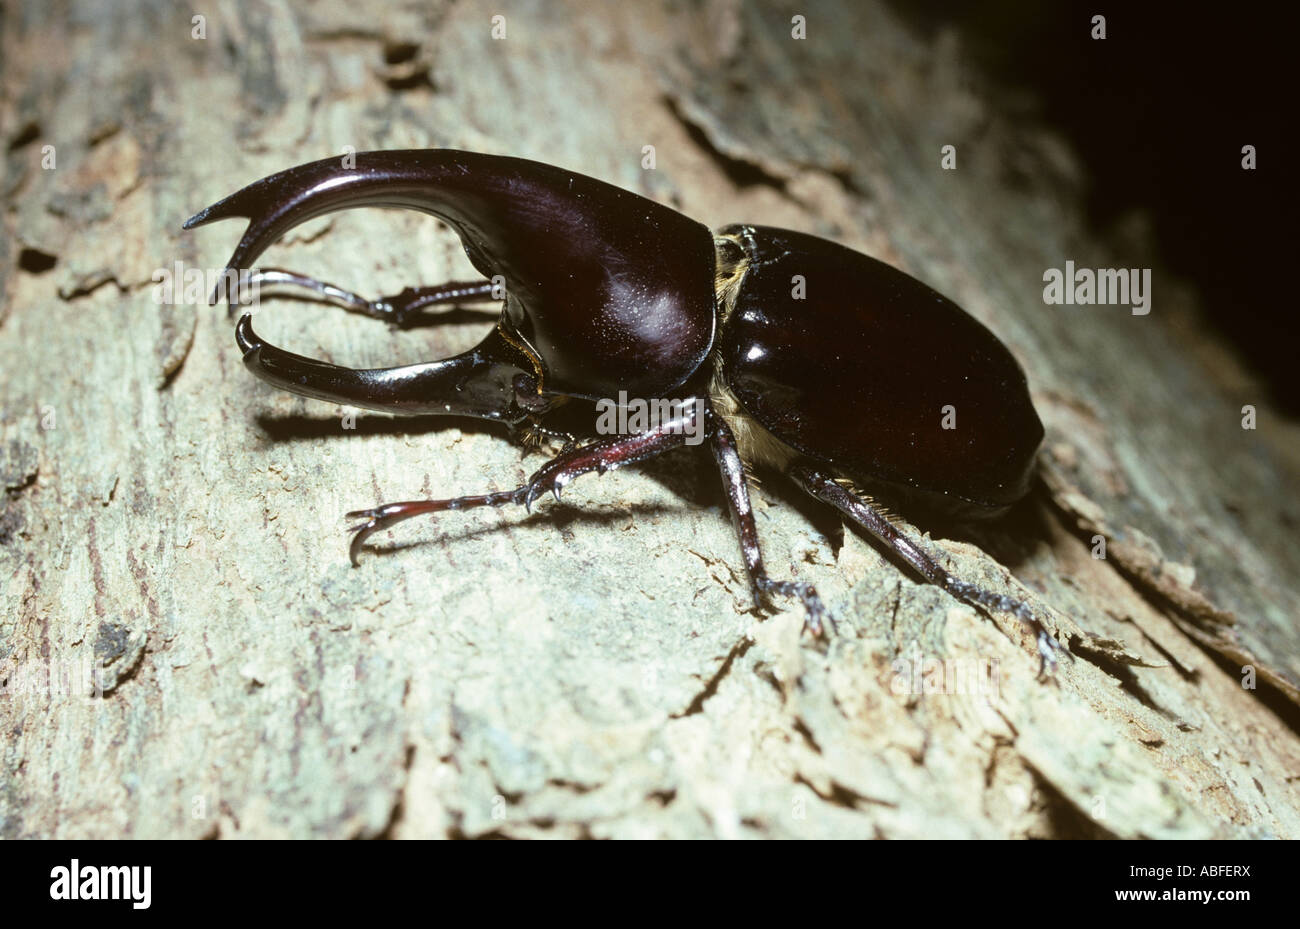 Rhinoceros beetle Xylotrupes gideon Scarabaeidae in rainforest Sulawesi - Stock Image